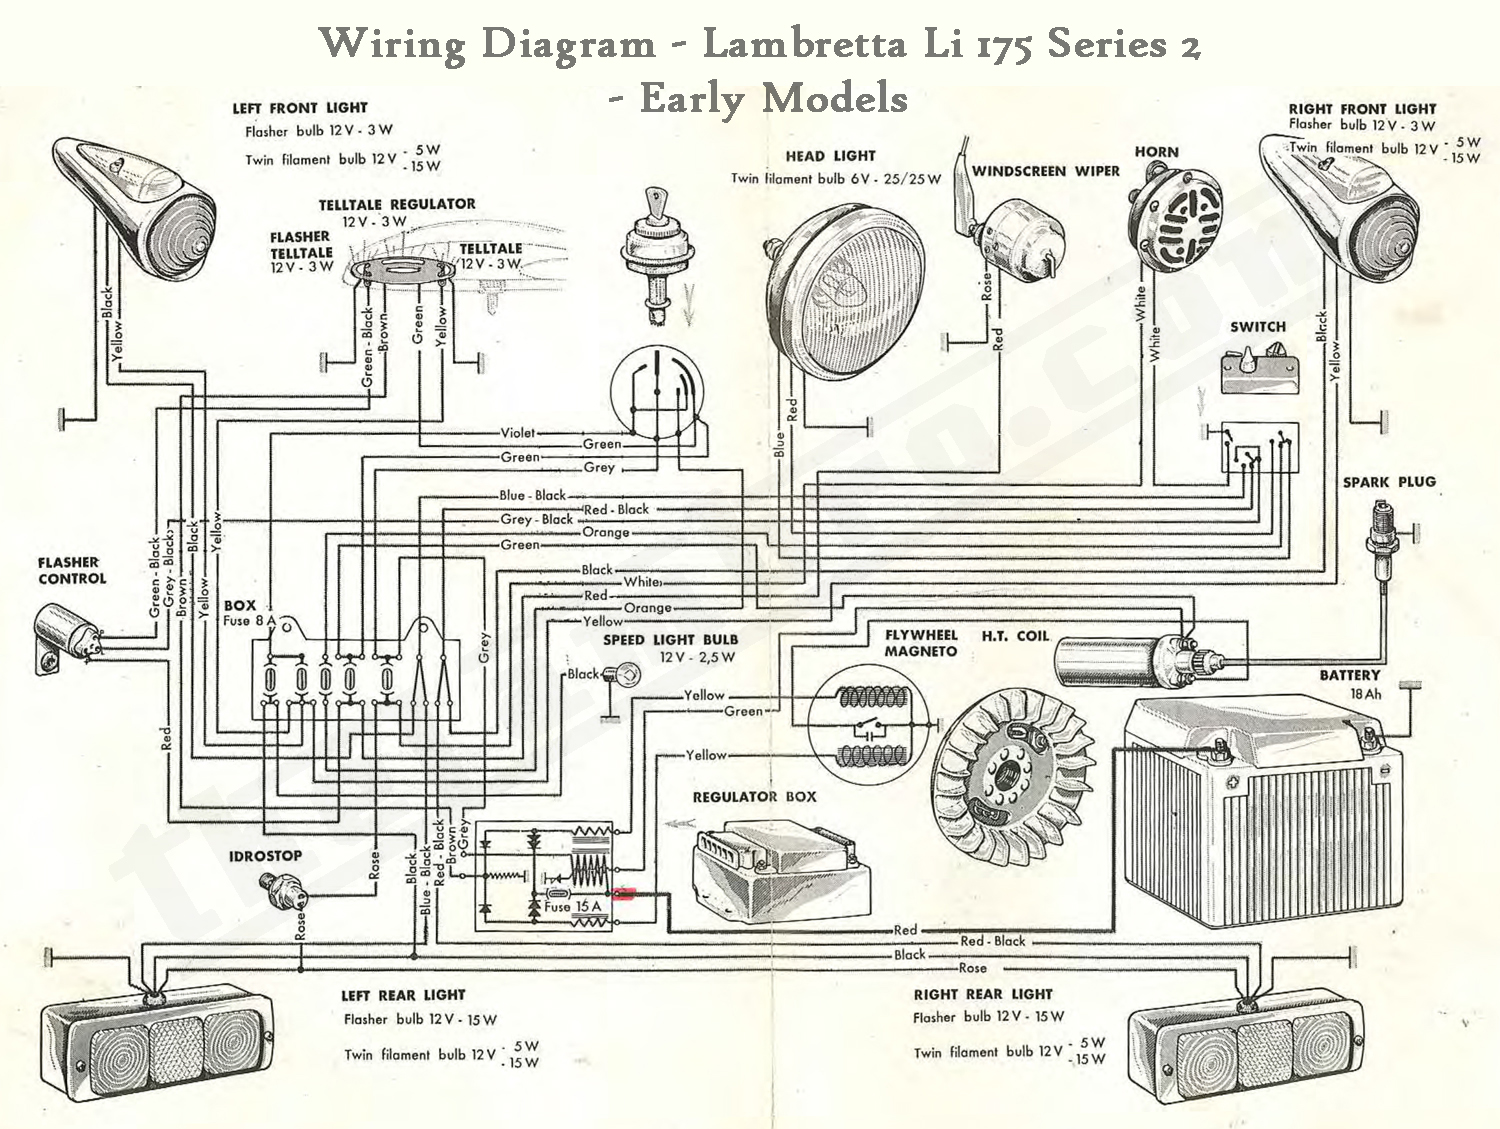 hy_6976] lambretta lighting parts diagram wiring diagram  taliz rect mohammedshrine librar wiring 101